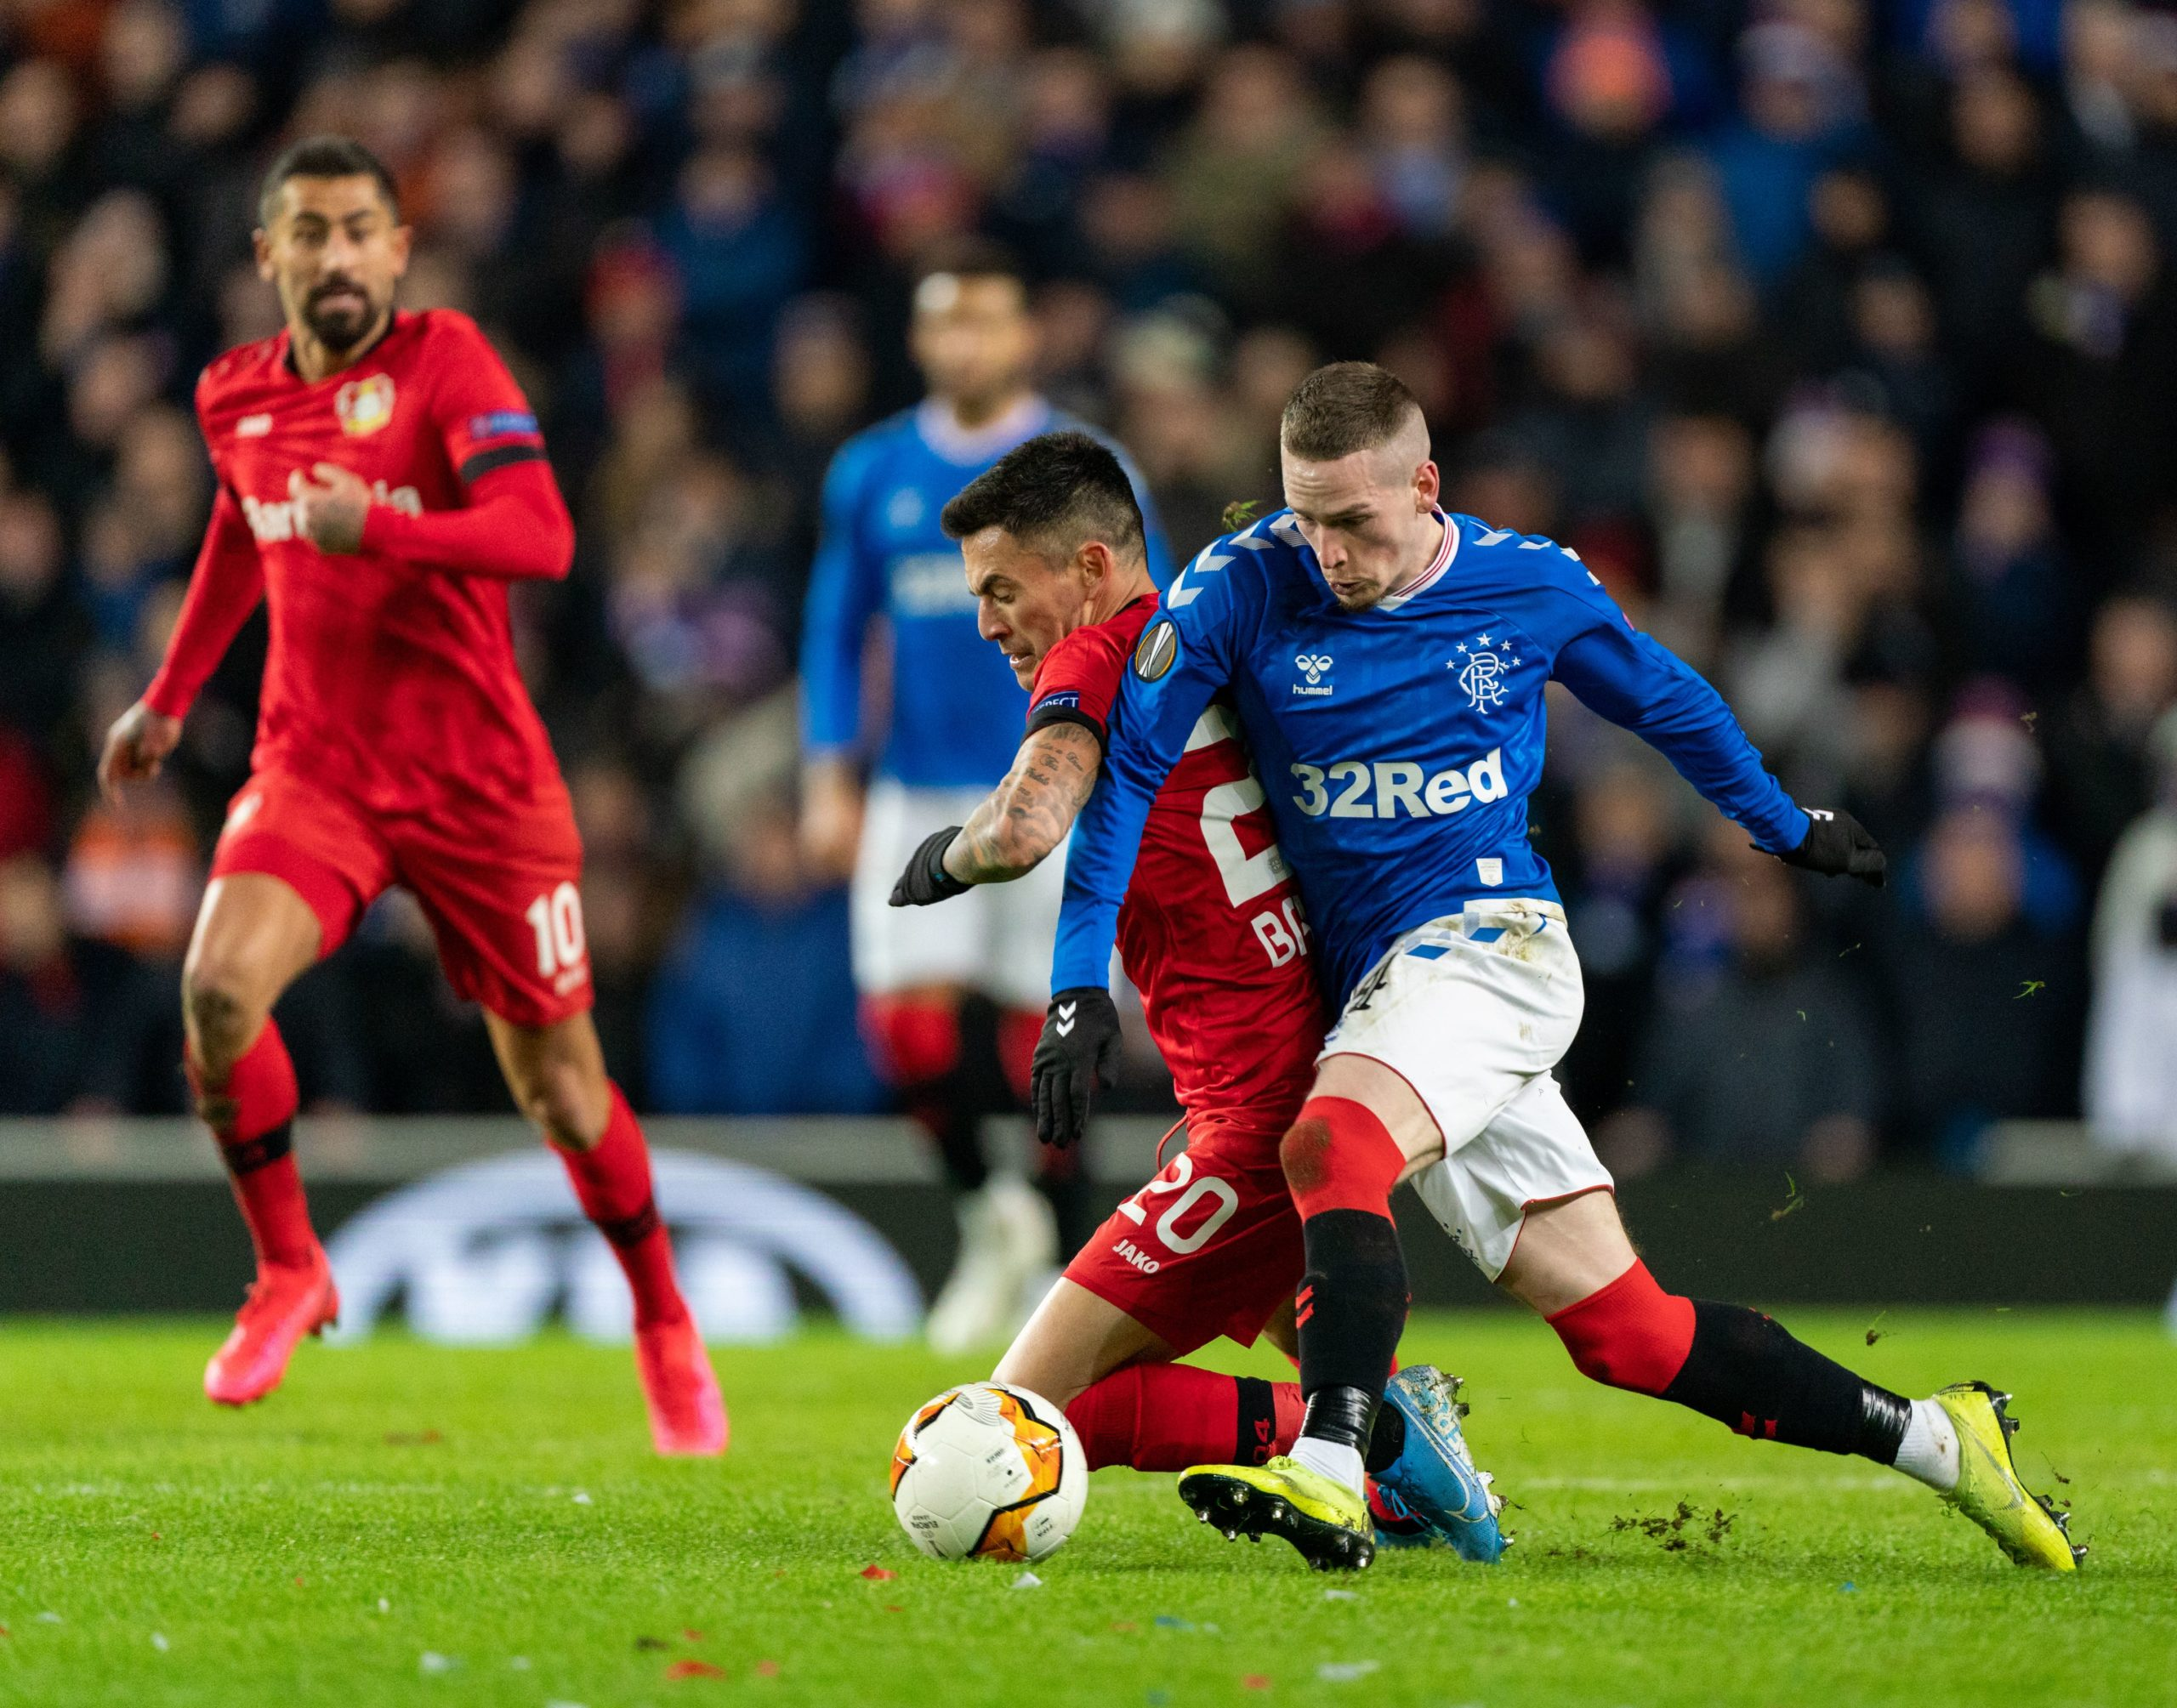 Rangers were beaten by Bayer Leverkusen at Ibrox last night